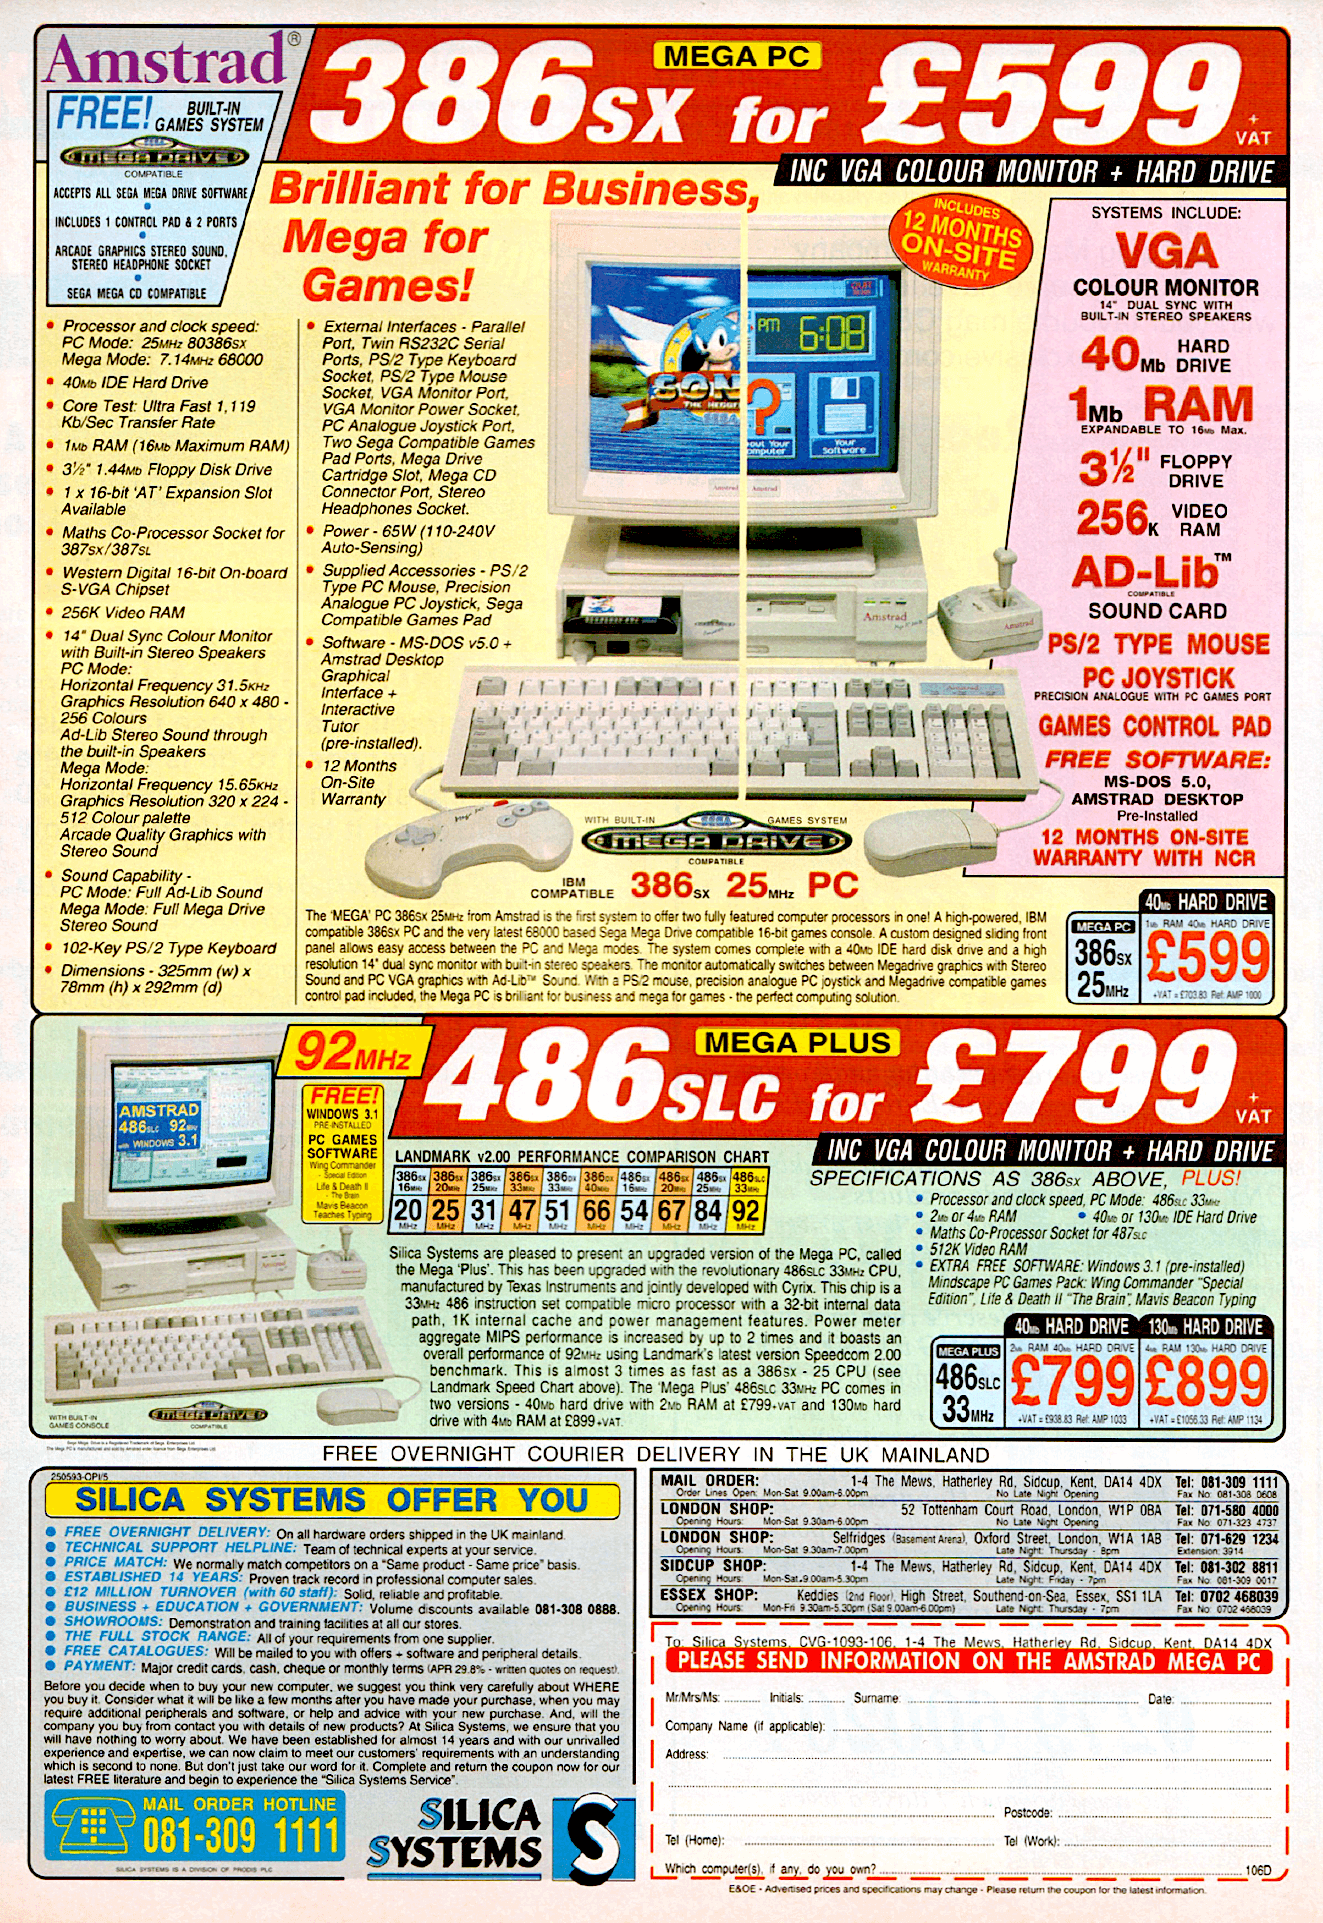 The Mega PC is a computer manufactured and released by Amstrad in 1993 under licence from Sega. It was similar but unrelated to the Sega TeraDrive. It is a standard Amstrad PC with Sega Mega Drive hardware bundled inside, the system was wired to share the dual-sync monitor and speakers with the Mega Drive on a separate circuit board.  Initially released in PAL areas such as Europe and Australia in 1993,[2] its success was short-lived due to its high price of £999.99 (later reduced to £599) and a CPU that was outdated by the time of its release. It was slightly easier to acquire an Amstrad Mega PC than the Sega TeraDrive system due to higher manufacturing volumes. Both systems have become collector's items.  **Technical Specifications**   In general, the Mega PC was seen as a better-built device than Sega's TeraDrive, as the unit was more robust and had more efficient air circulation.[3] The Mega PC was IBM-compatible and had a Mega Drive ISA card, a Mega Drive Controller, Keyboard, Mouse, Monitor, Joystick and Internal Speakers. Side view of the unit, showing the ISA card, spare slot and RAM positioning  The machine shipped with 1MB of RAM, provided by 4× 256KB 30-pin SIMM sticks. This was expandable to 16MB by using 4× 4MB memory modules.[4]  Although it boasted a higher specification than the Sega TeraDrive (having more RAM and a faster processor), the specification of the Mega PC's CPU was a generation old. The newer Intel 80486 was on the market and the first Pentium processors were released the same year as the Mega PC. The system was unable to act as a Software Development Kit due to its inability to simultaneously use the PC and the Mega Drive hardware. A cover on the front of the unit prevented the insertion of a Mega Drive game cartridge while using the PC hardware.[5]    **Input/Output**   The machine's rear houses multiple I/O ports. These include two serial ports, a 25-pin parallel port, a VGA port with combined signals for a standard VGA monitor and sou